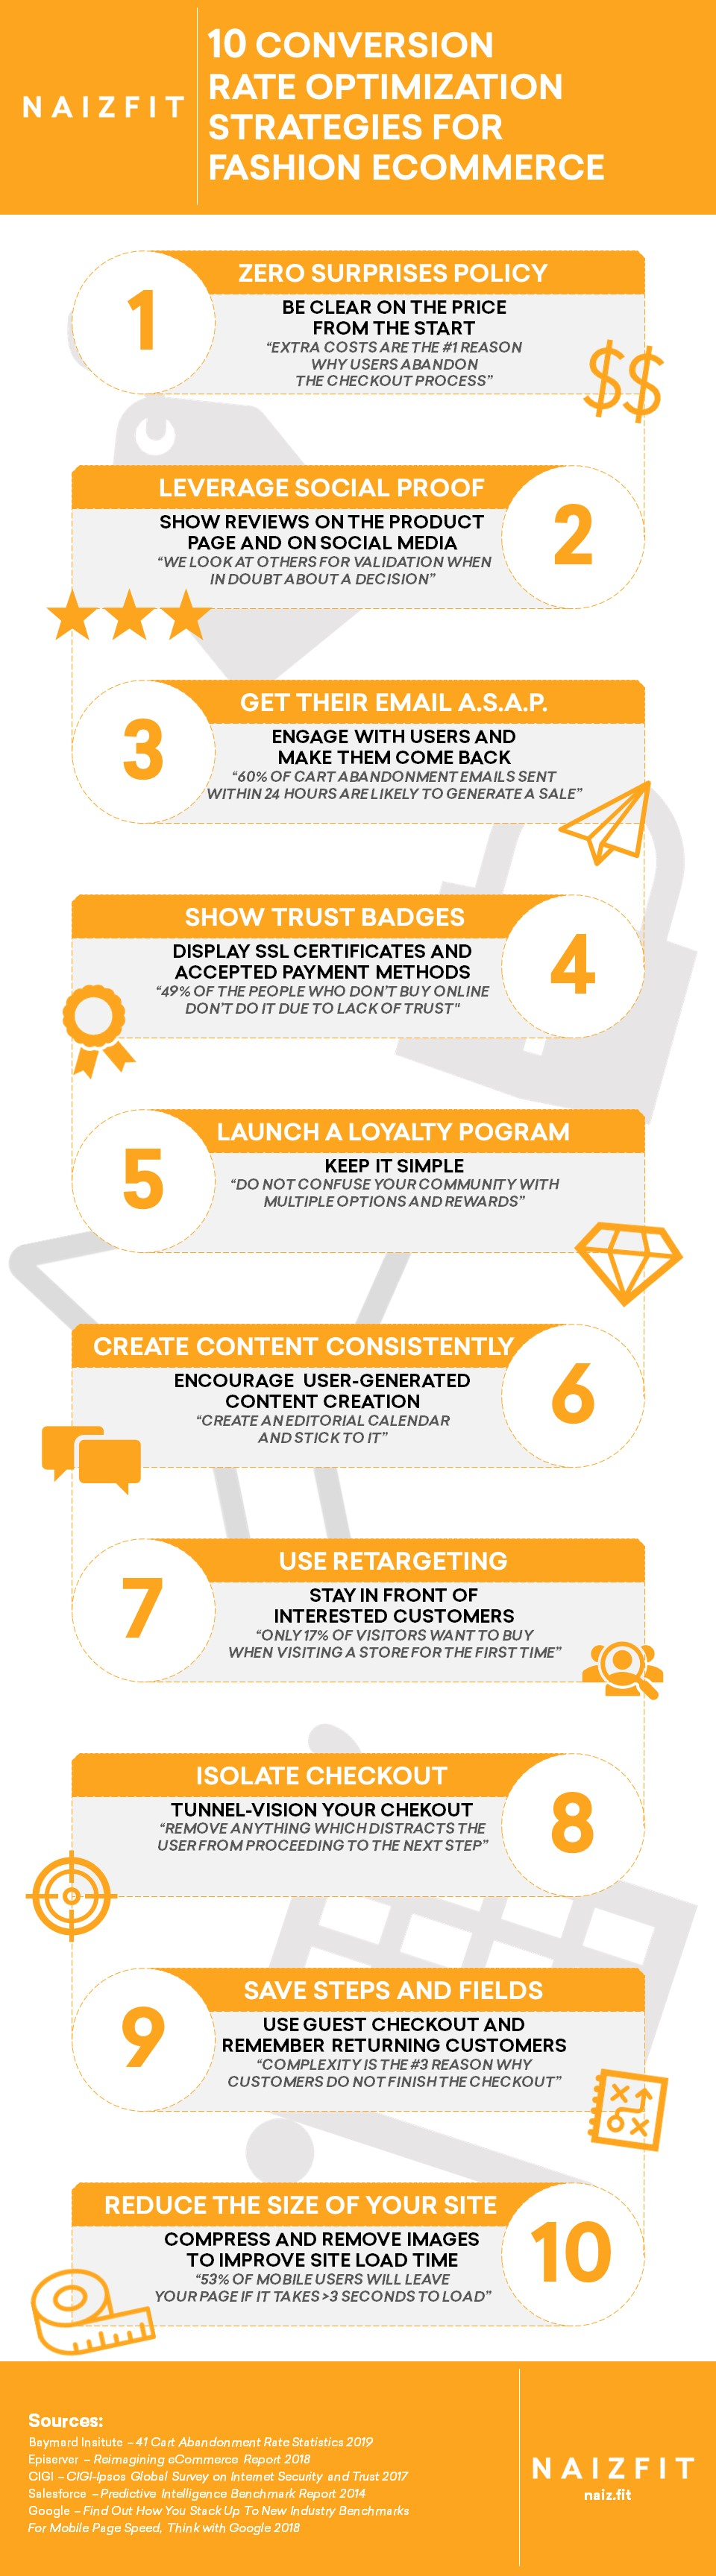 Infographic describing 10 conversion rate optimization strategies for fashion ecommerce